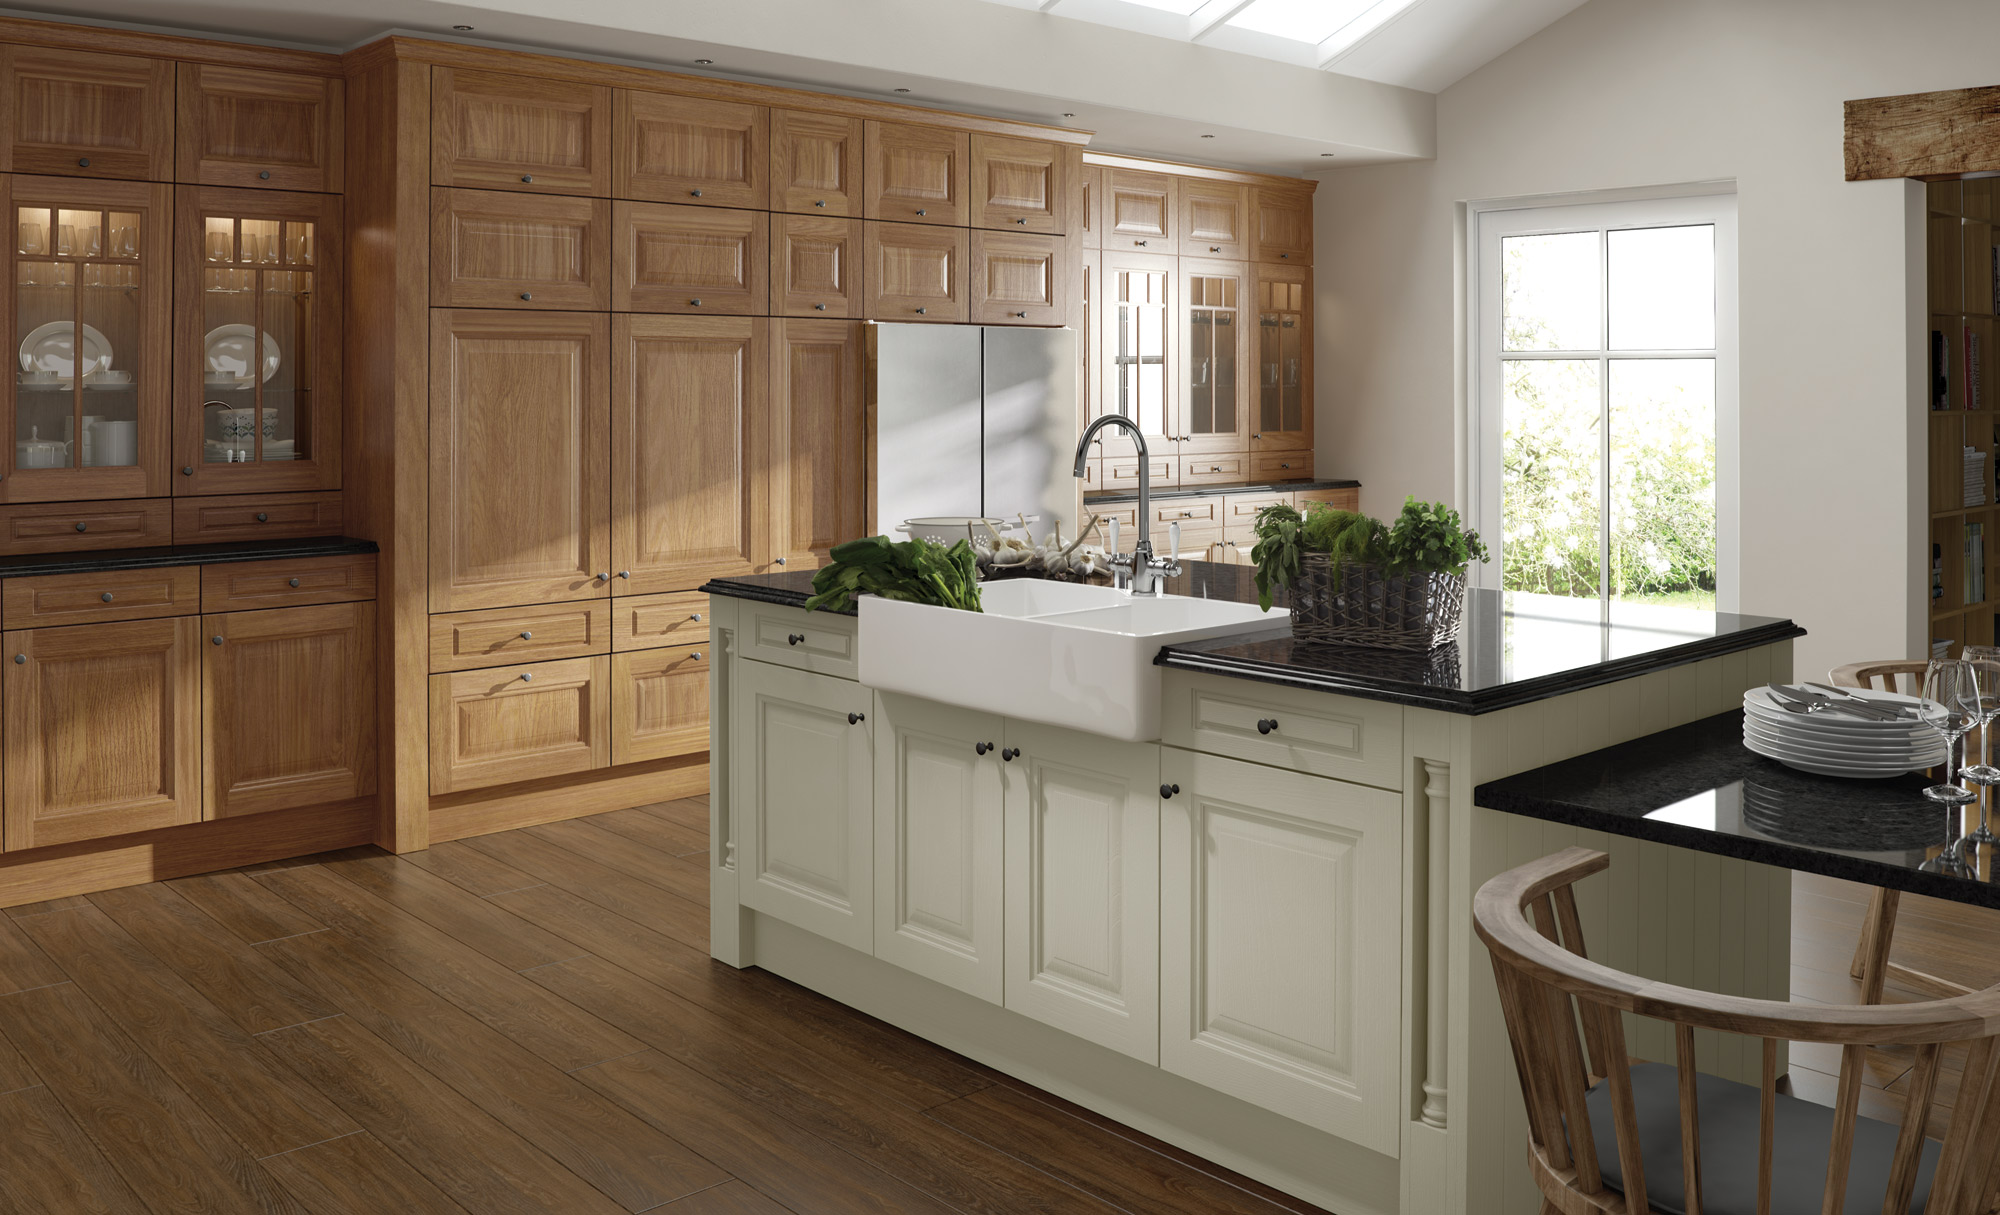 http://www.gurteenkitchens.ie/wp-content/uploads/2019/08/classic-traditional-country-jefferson-oak-painted-ivory-kitchen-hero.jpg